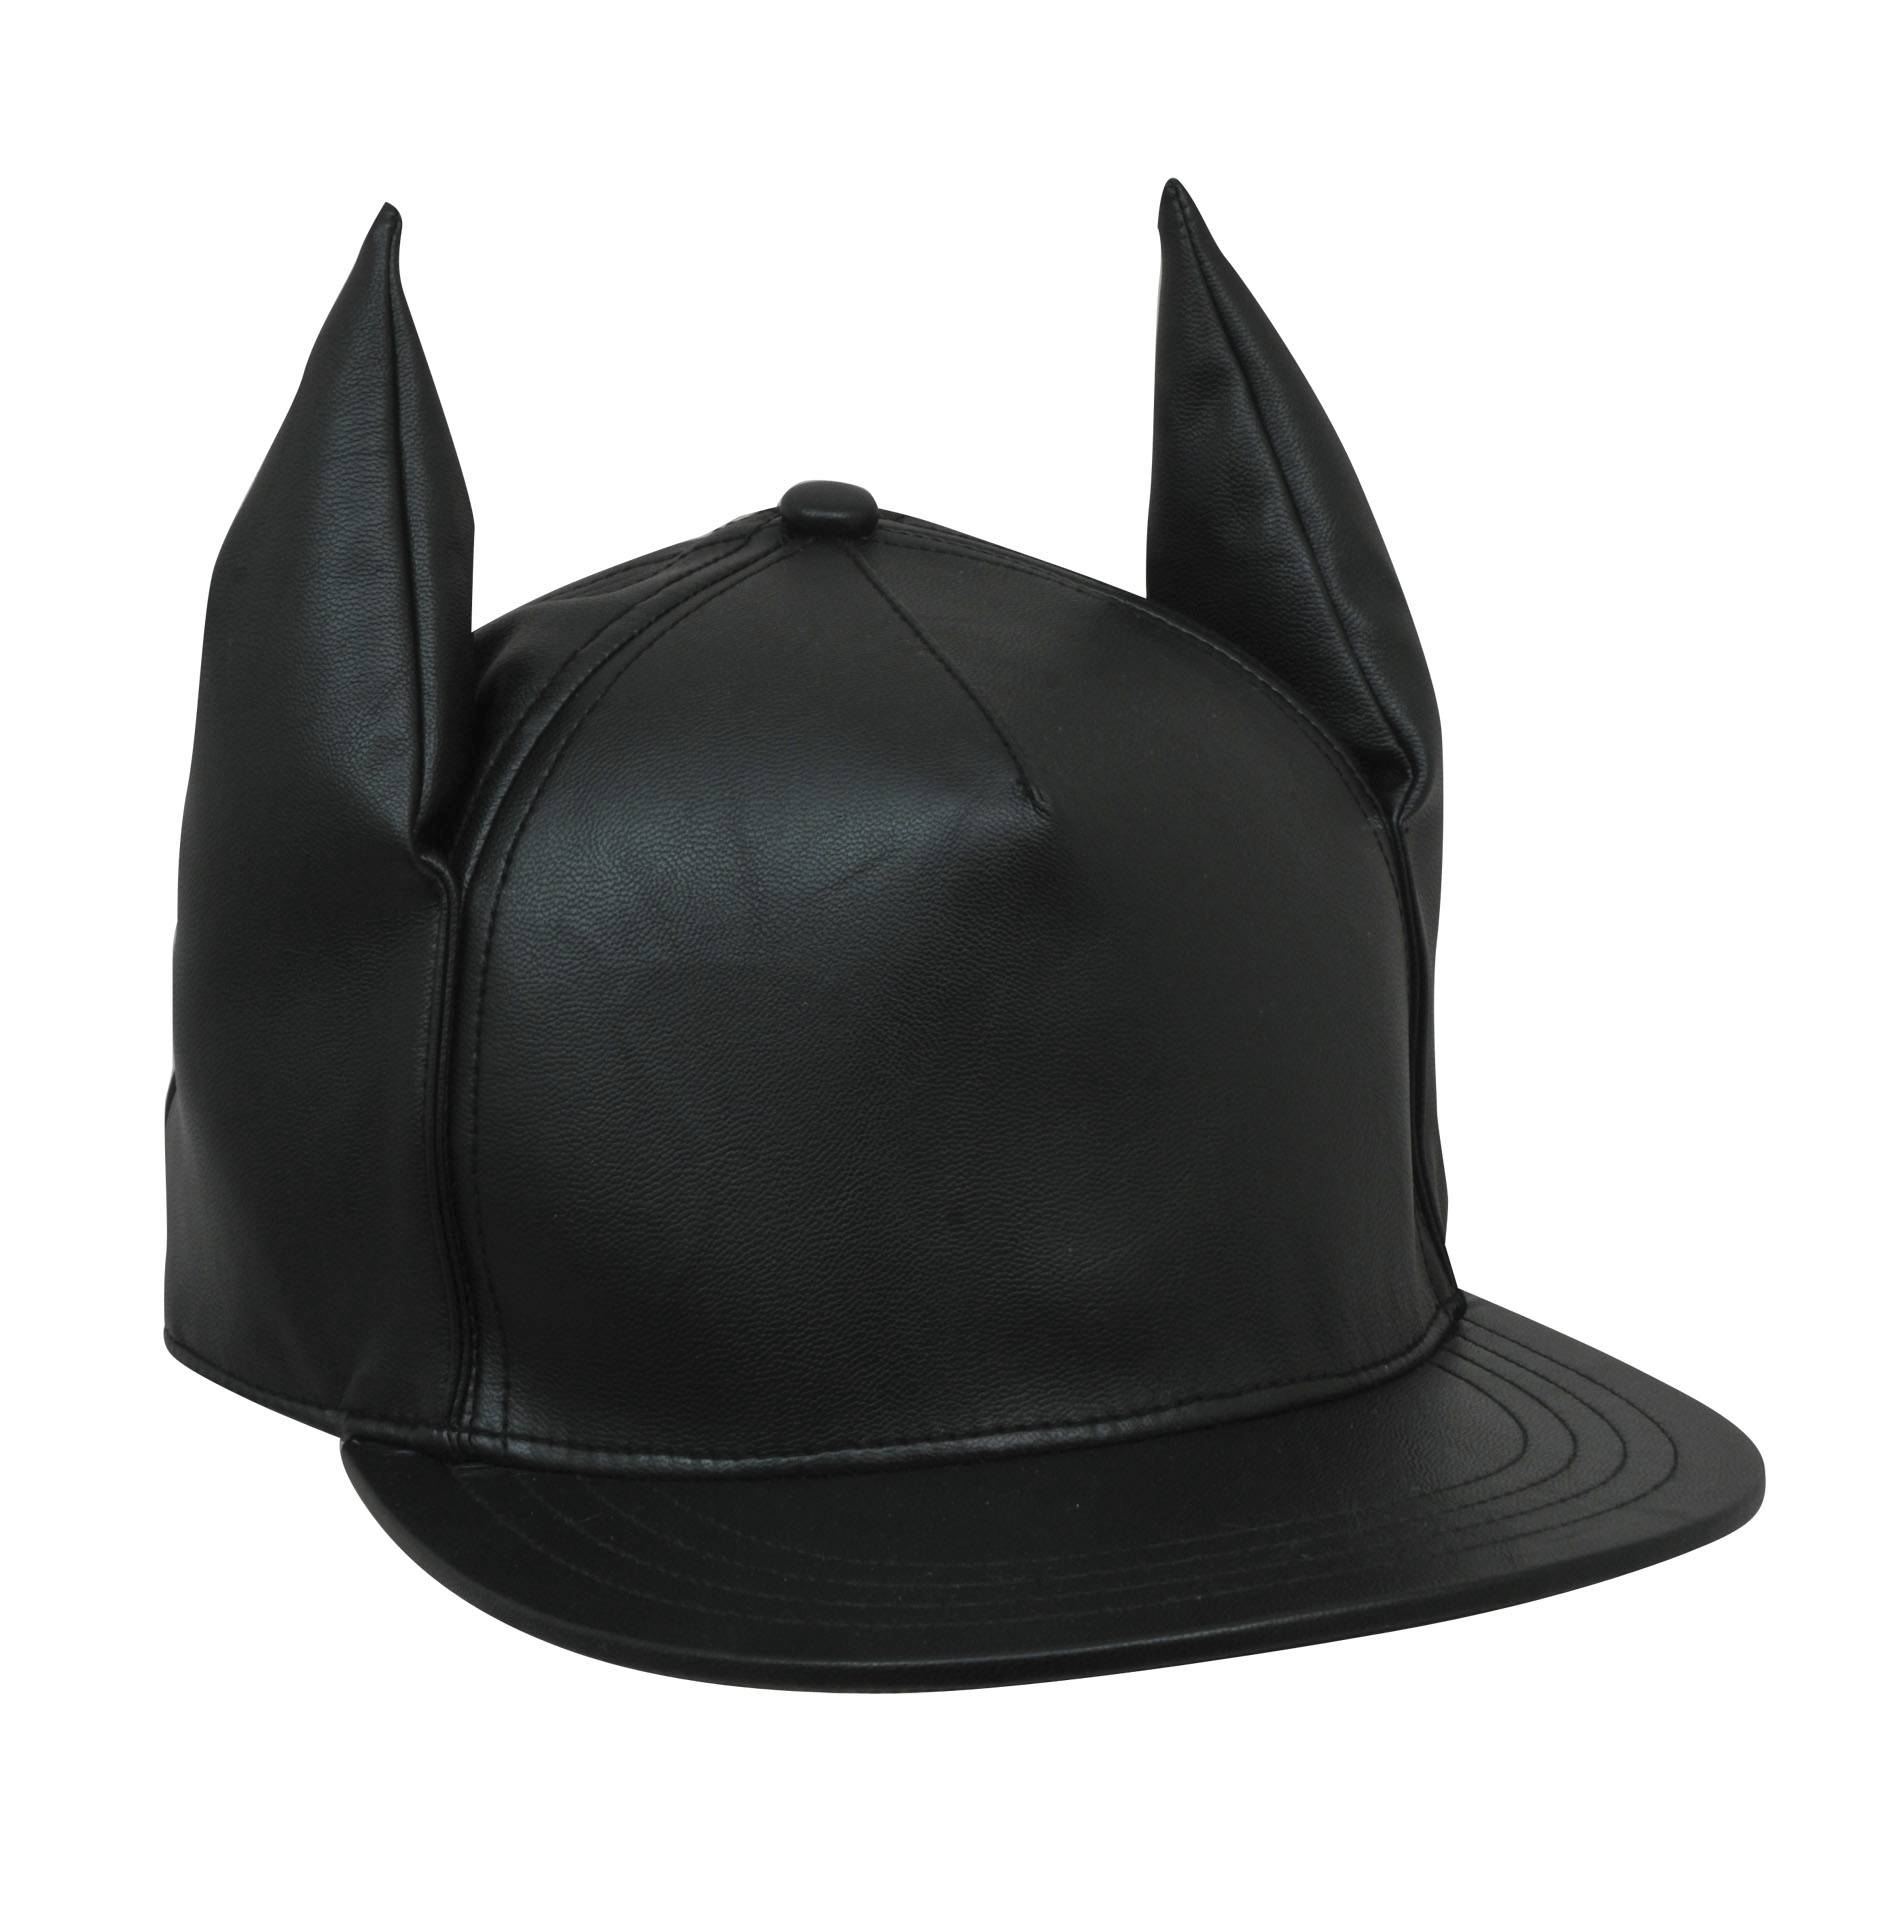 Bluntman Replica Hat